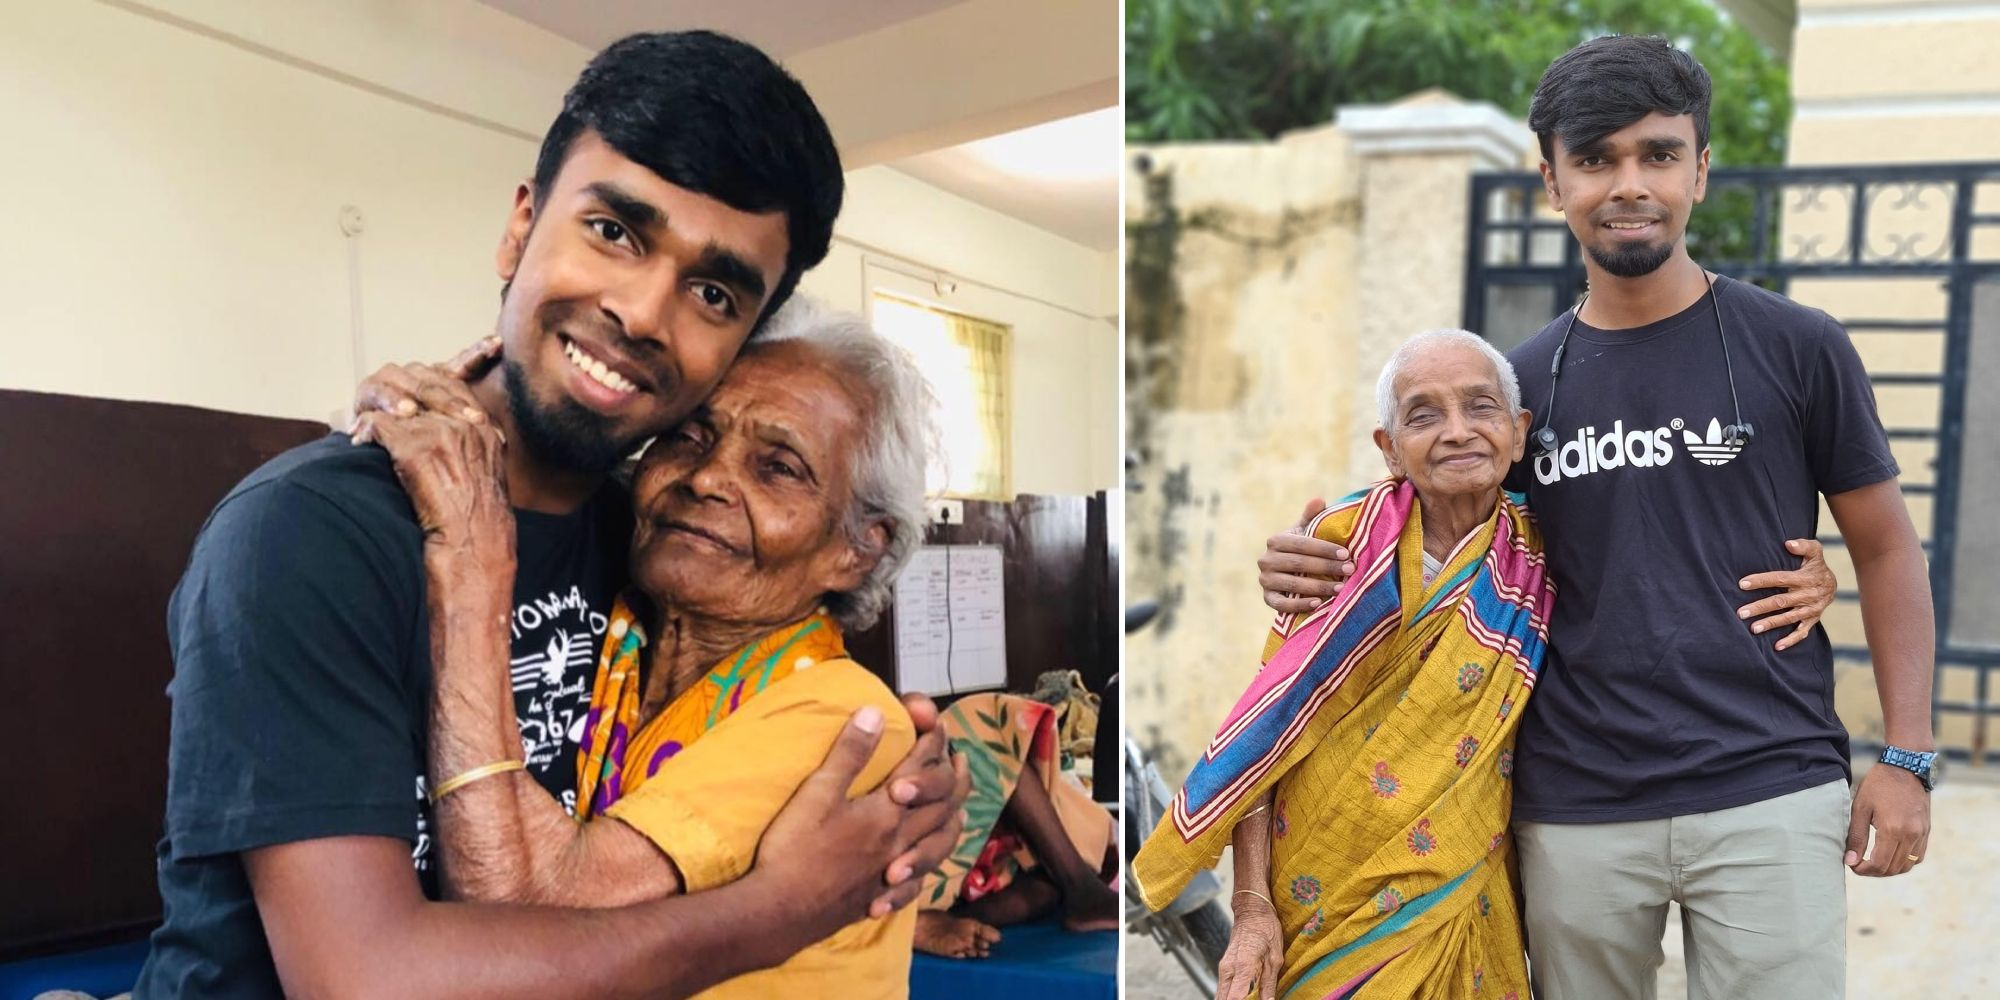 Jasper Paul – An inspiring story of a 19 year old guy from Hyderabad who rescues old people from roads via his NGO, The Second Chance